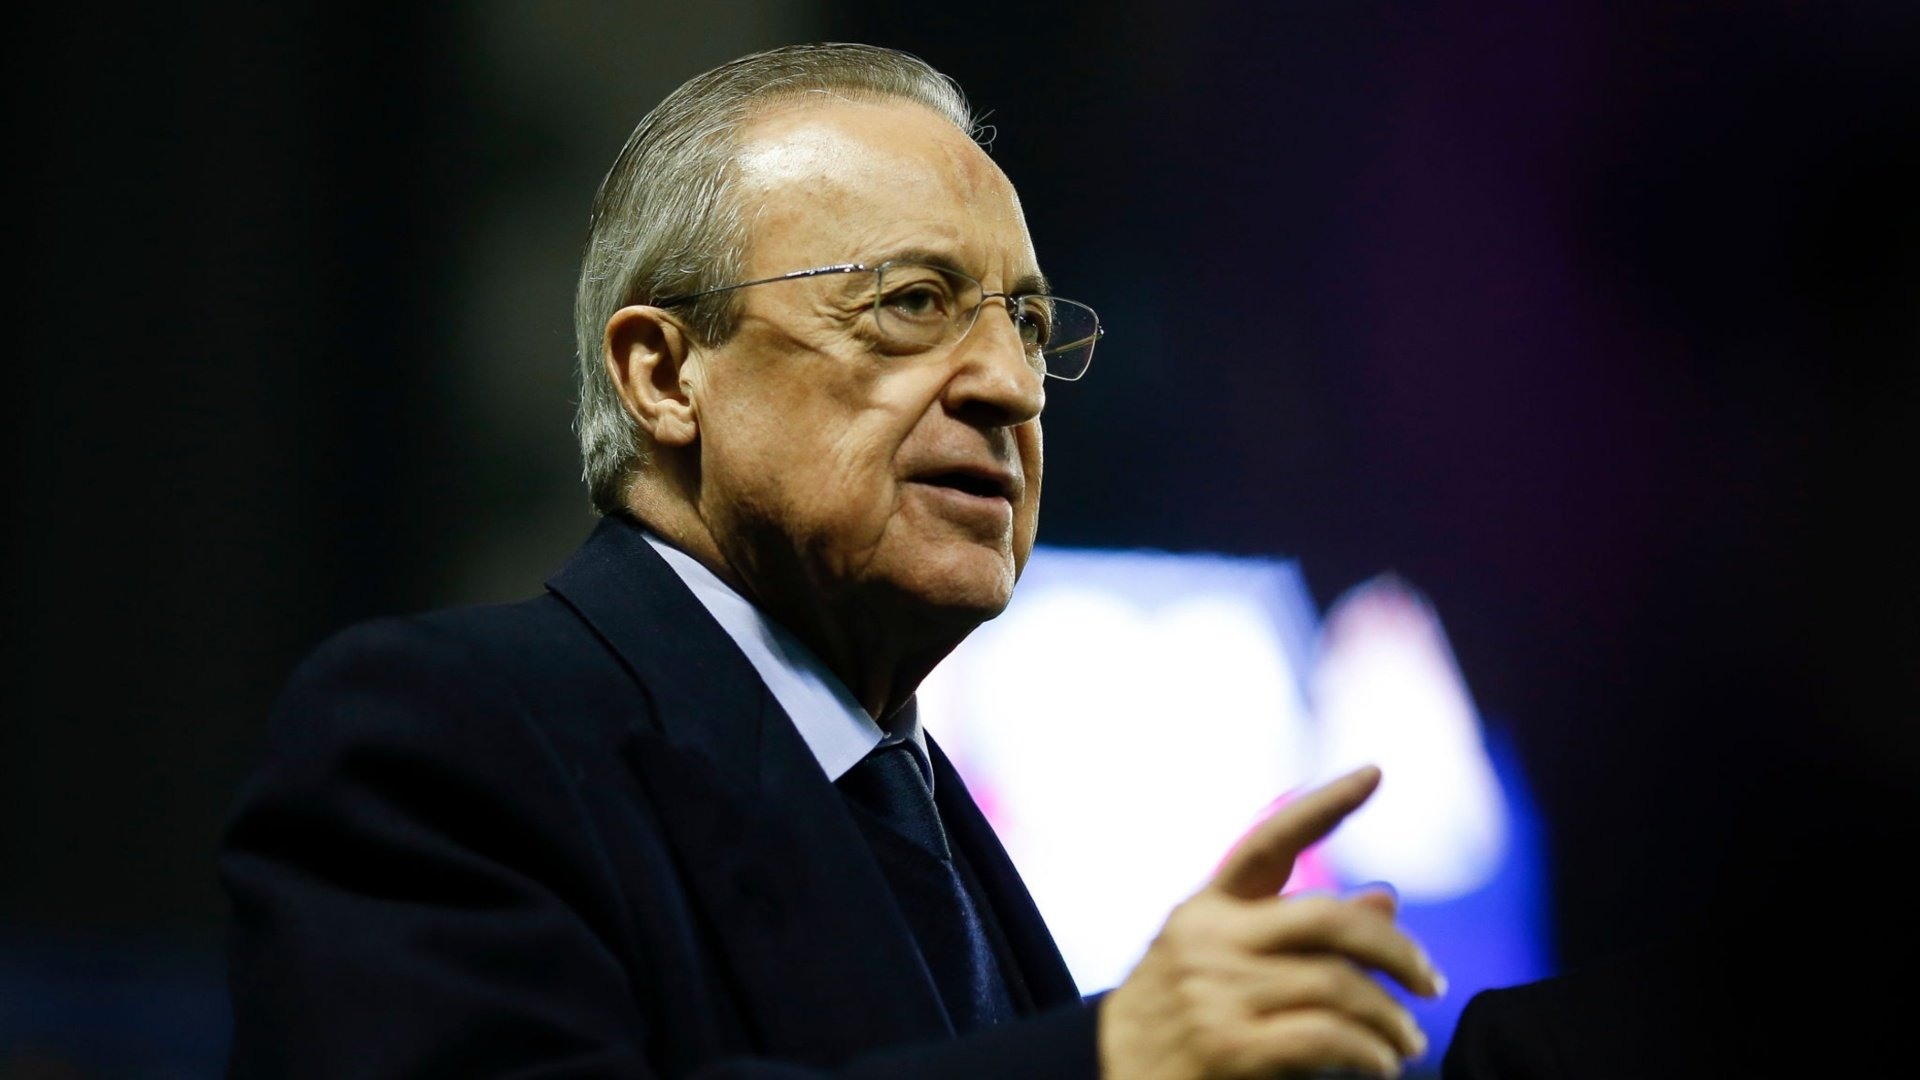 Florentino Perez is irreplaceable, regardless of his many flaws